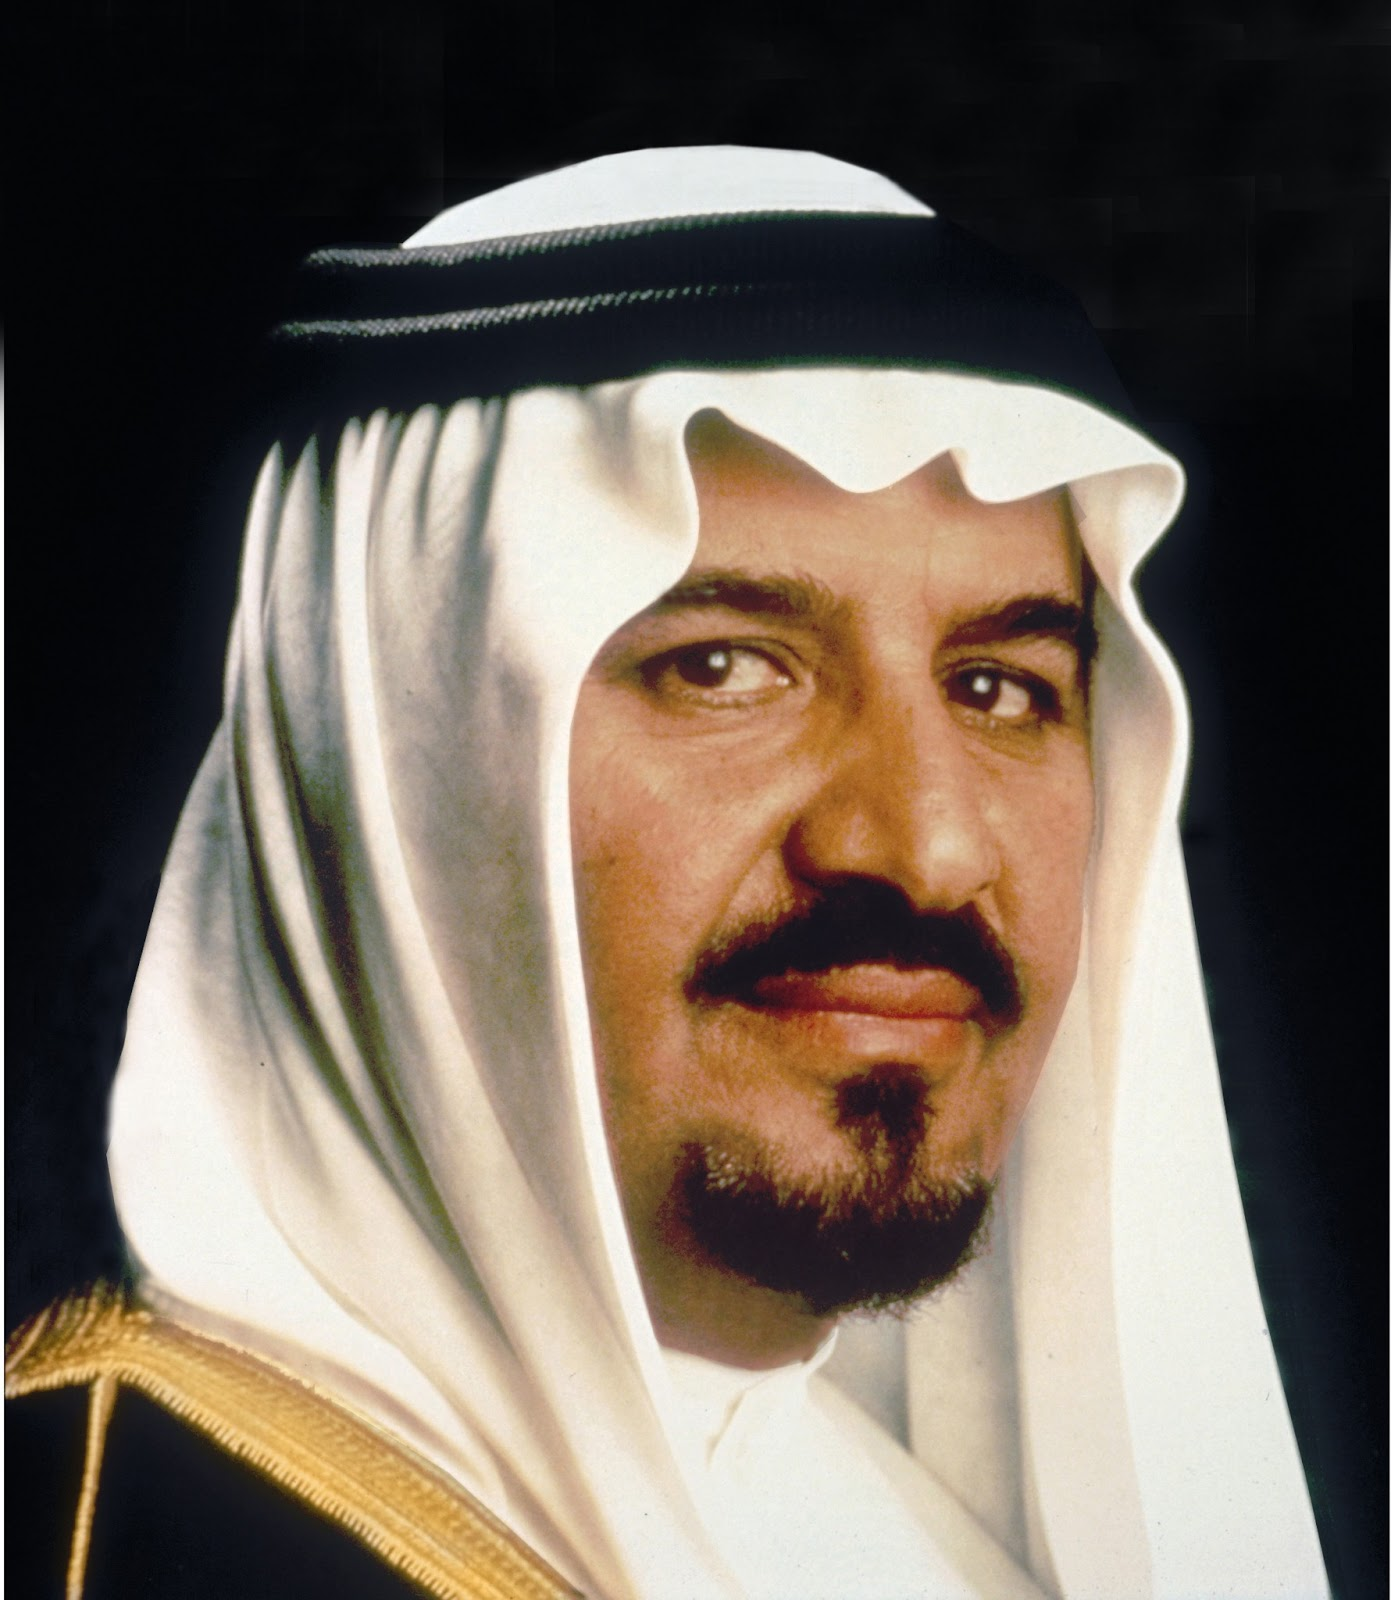 Hq Wallpapers Movies King Of Abdullah Saudi Arabia Nice Hq Hd